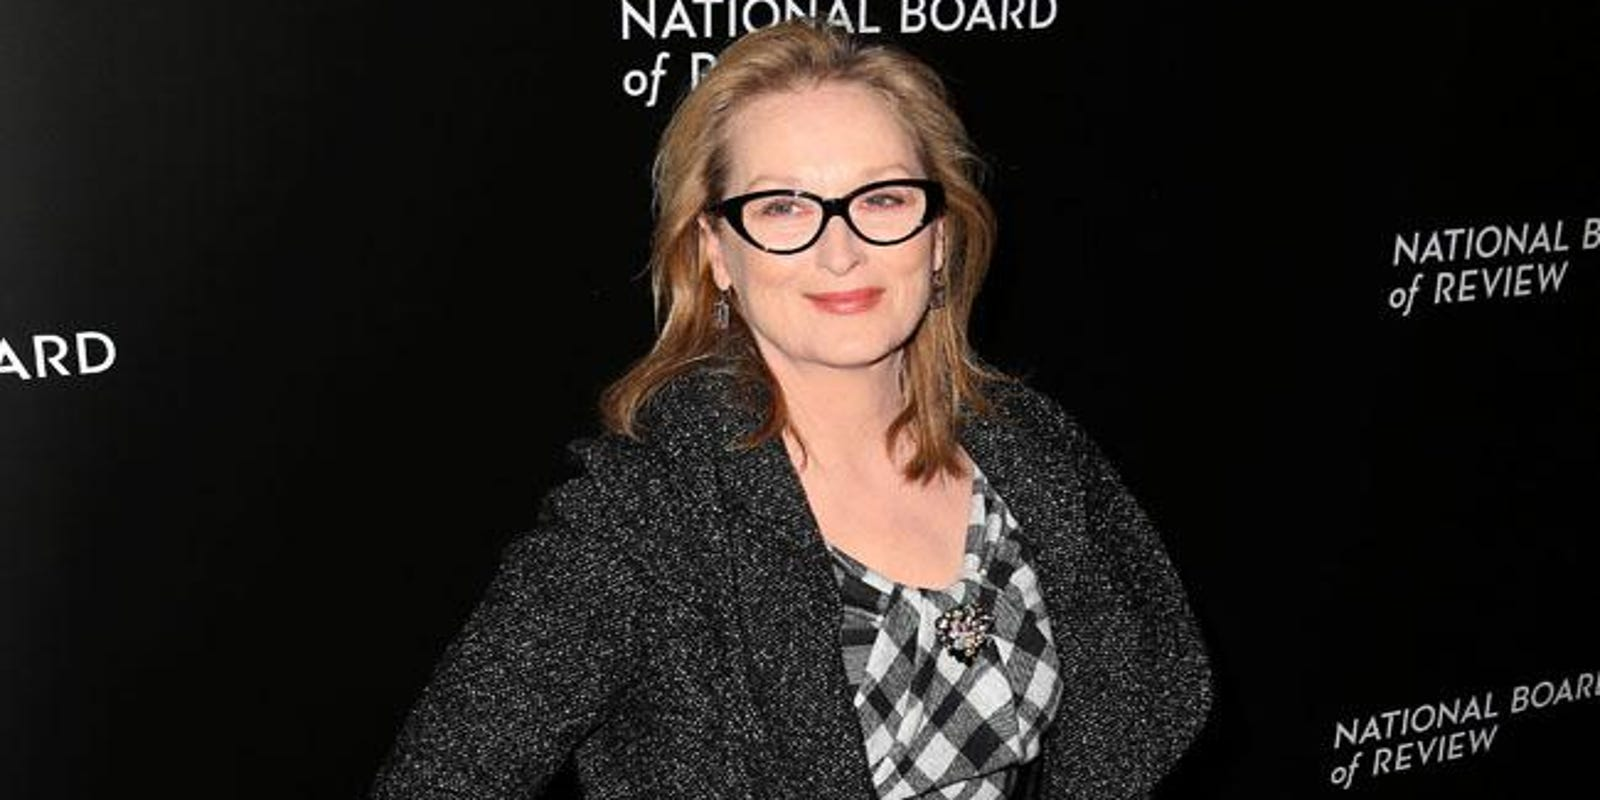 Meryl Streep Pays Tribute To Misty Upham Radio Wave Diagram Http Hollywoodbollywood Co In Hoadmin